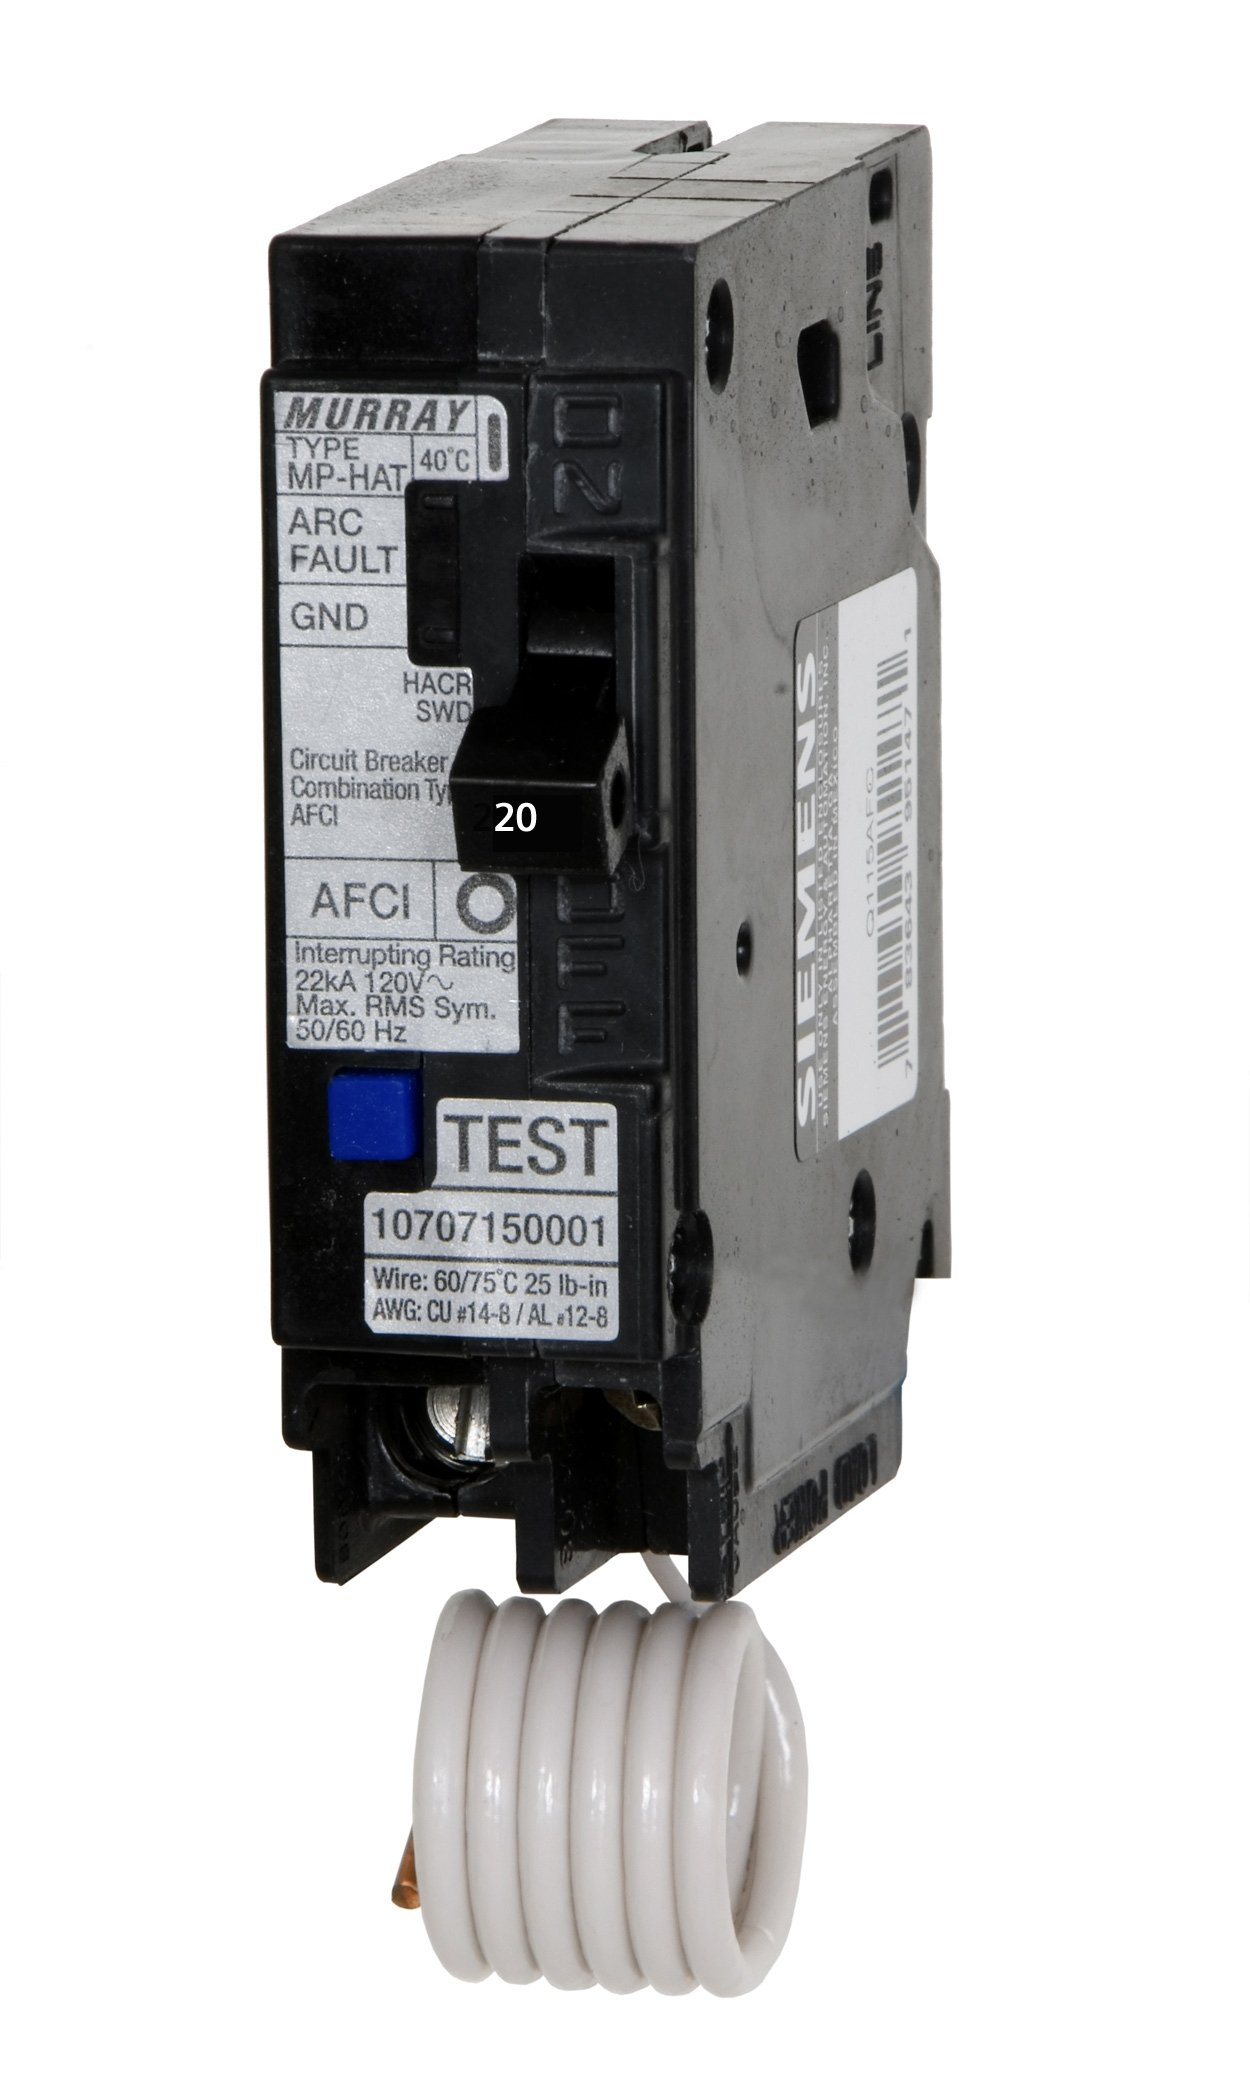 Best Rated In Arc Fault Circuit Breakers Helpful Customer Reviews Shop Eaton Type Br 30amp 2pole Breaker At Lowescom Murray Mp120af 20 Amp 1 Pole 120 Volt Interrupter Product Image